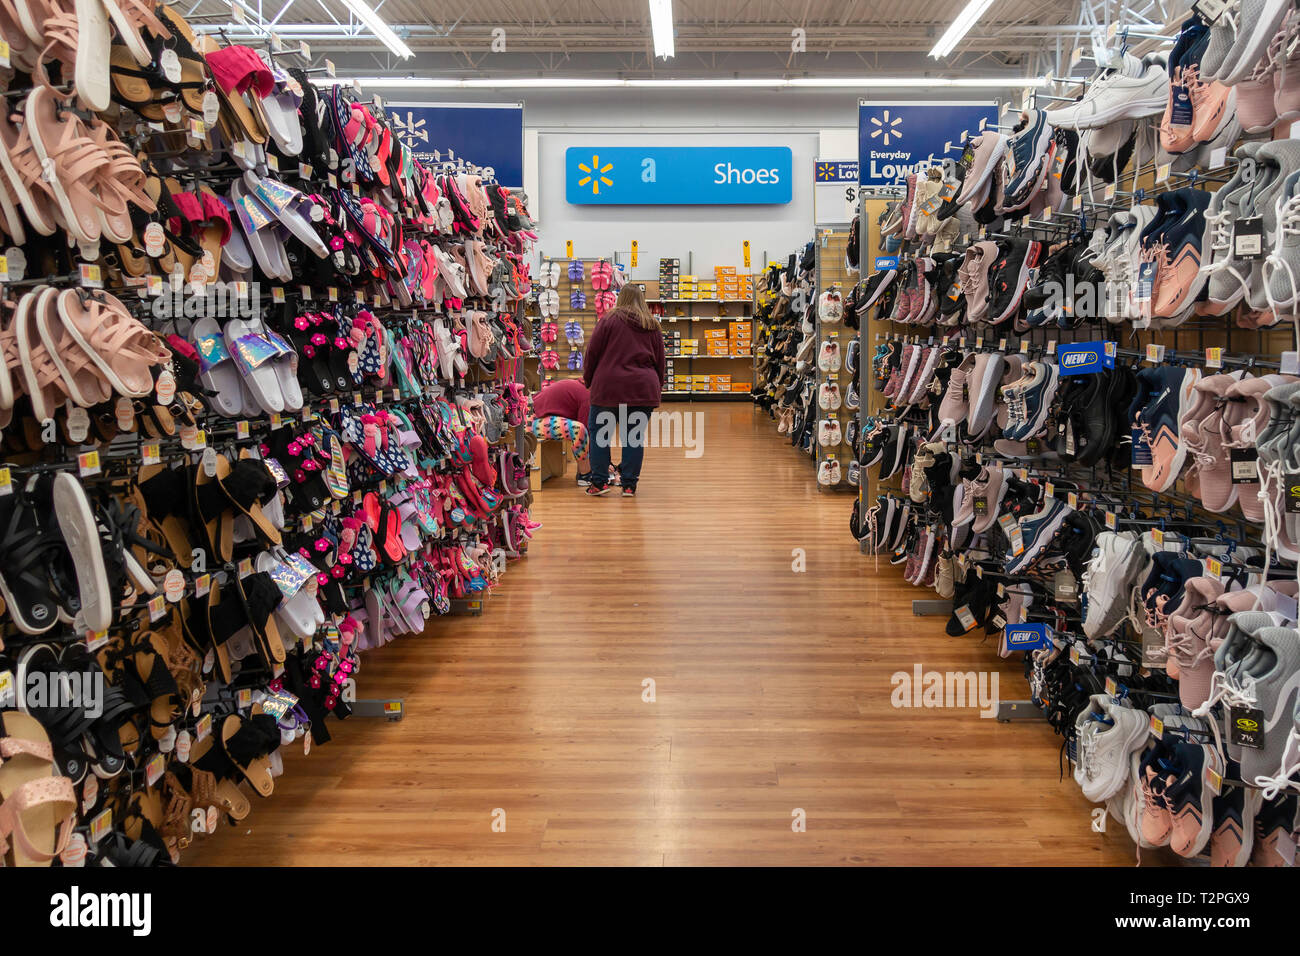 Walmart shoe department with two female customers trying on shoes. Wichita, Kansas, USA. Stock Photo